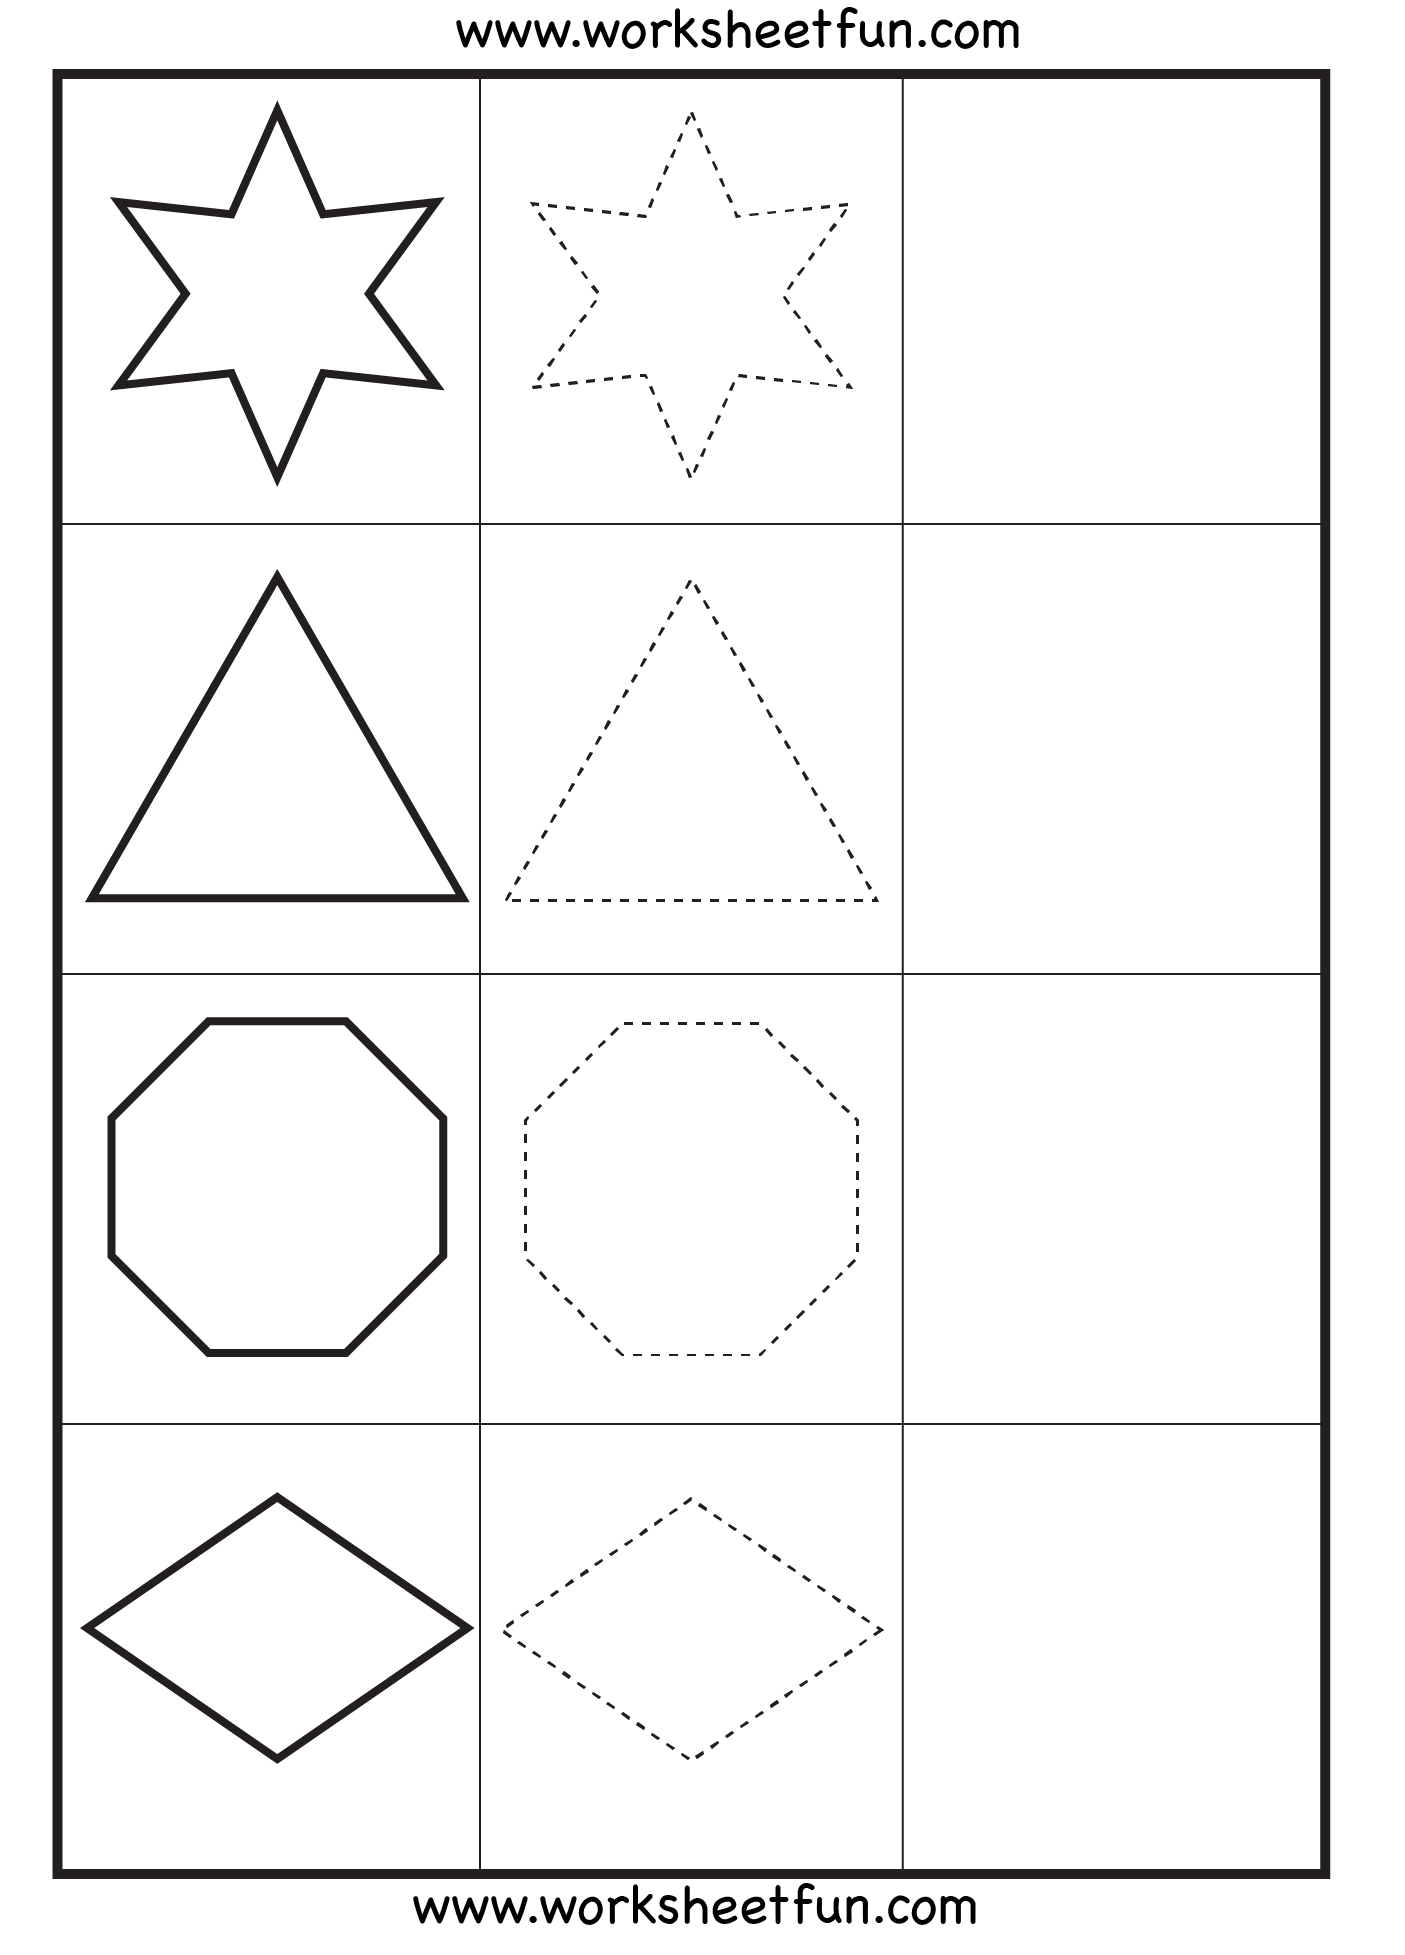 Tracing Worksheets For Kids Free Dot To